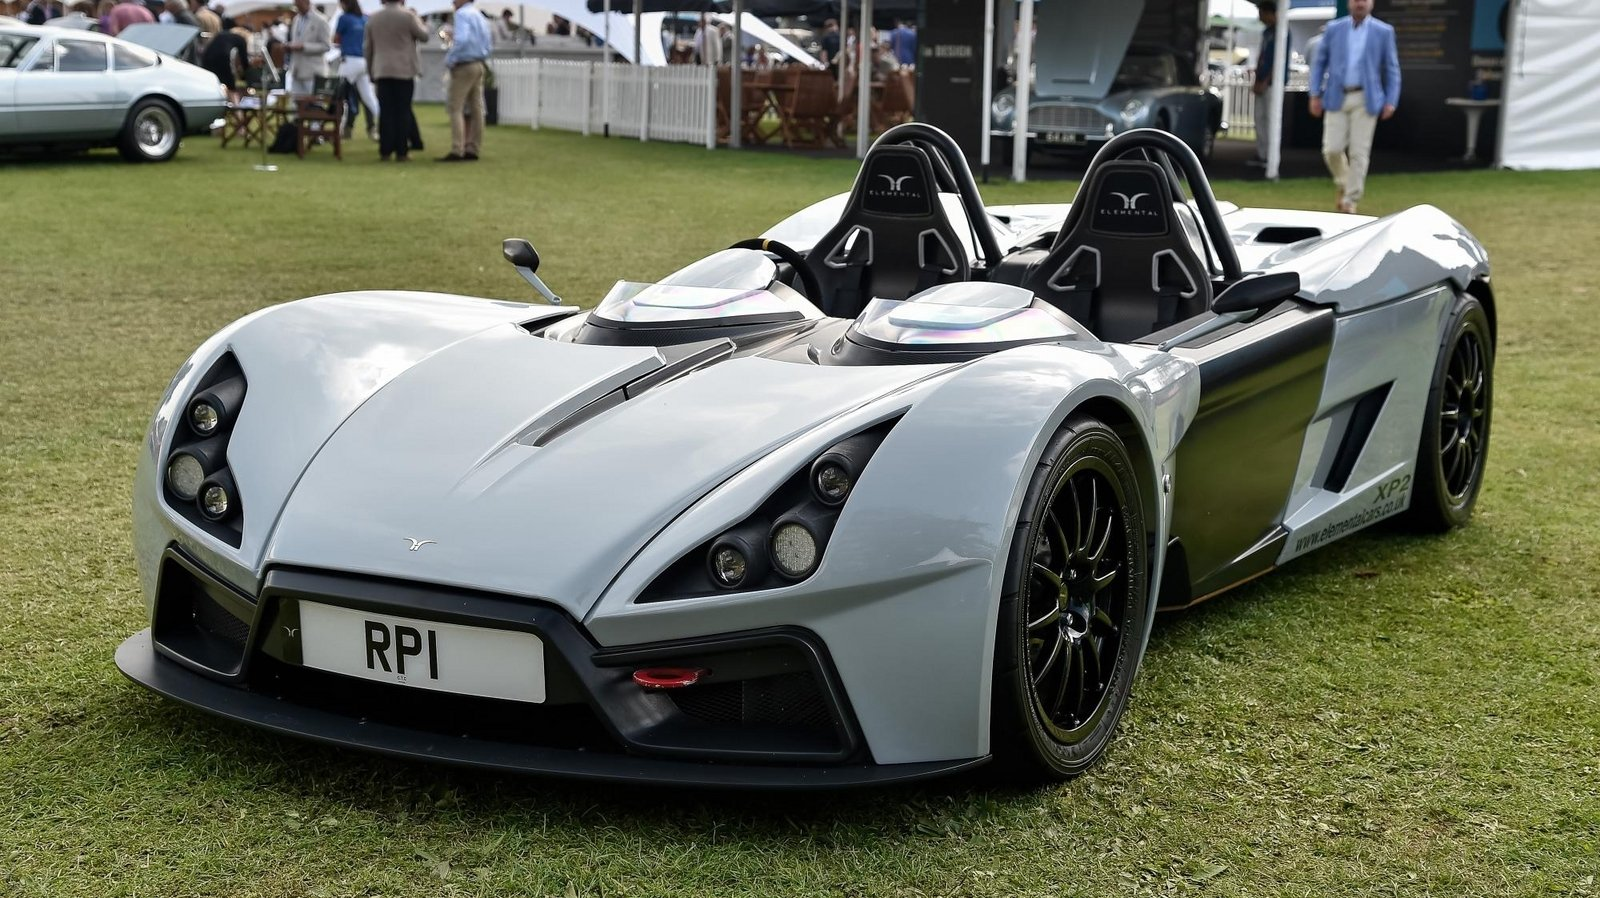 Ktm X Bow >> 2015 Elemental RP-1 Review - Top Speed